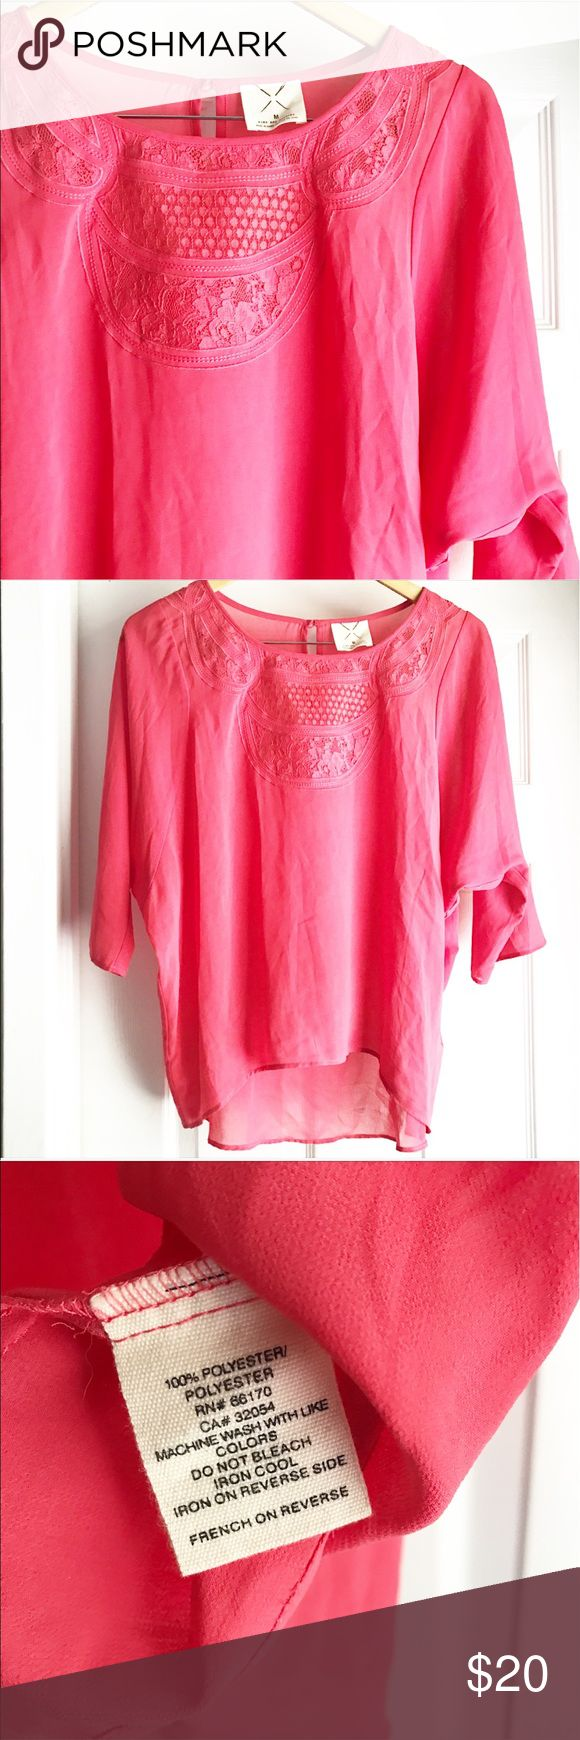 Pins & Needles Pink Flowy Lace Detail Blouse Such a pretty and flowy piece! So feminine! Gorgeous lace detailing around the collar, and slight batwing style sleeves. Perfect for warmer months or layering in the cooler ones. Little keyhole at back with button neck closure. EUC - tiniest of pulls near bottom hem that isn't really visible unless inspecting! Urban Outfitters Tops Blouses